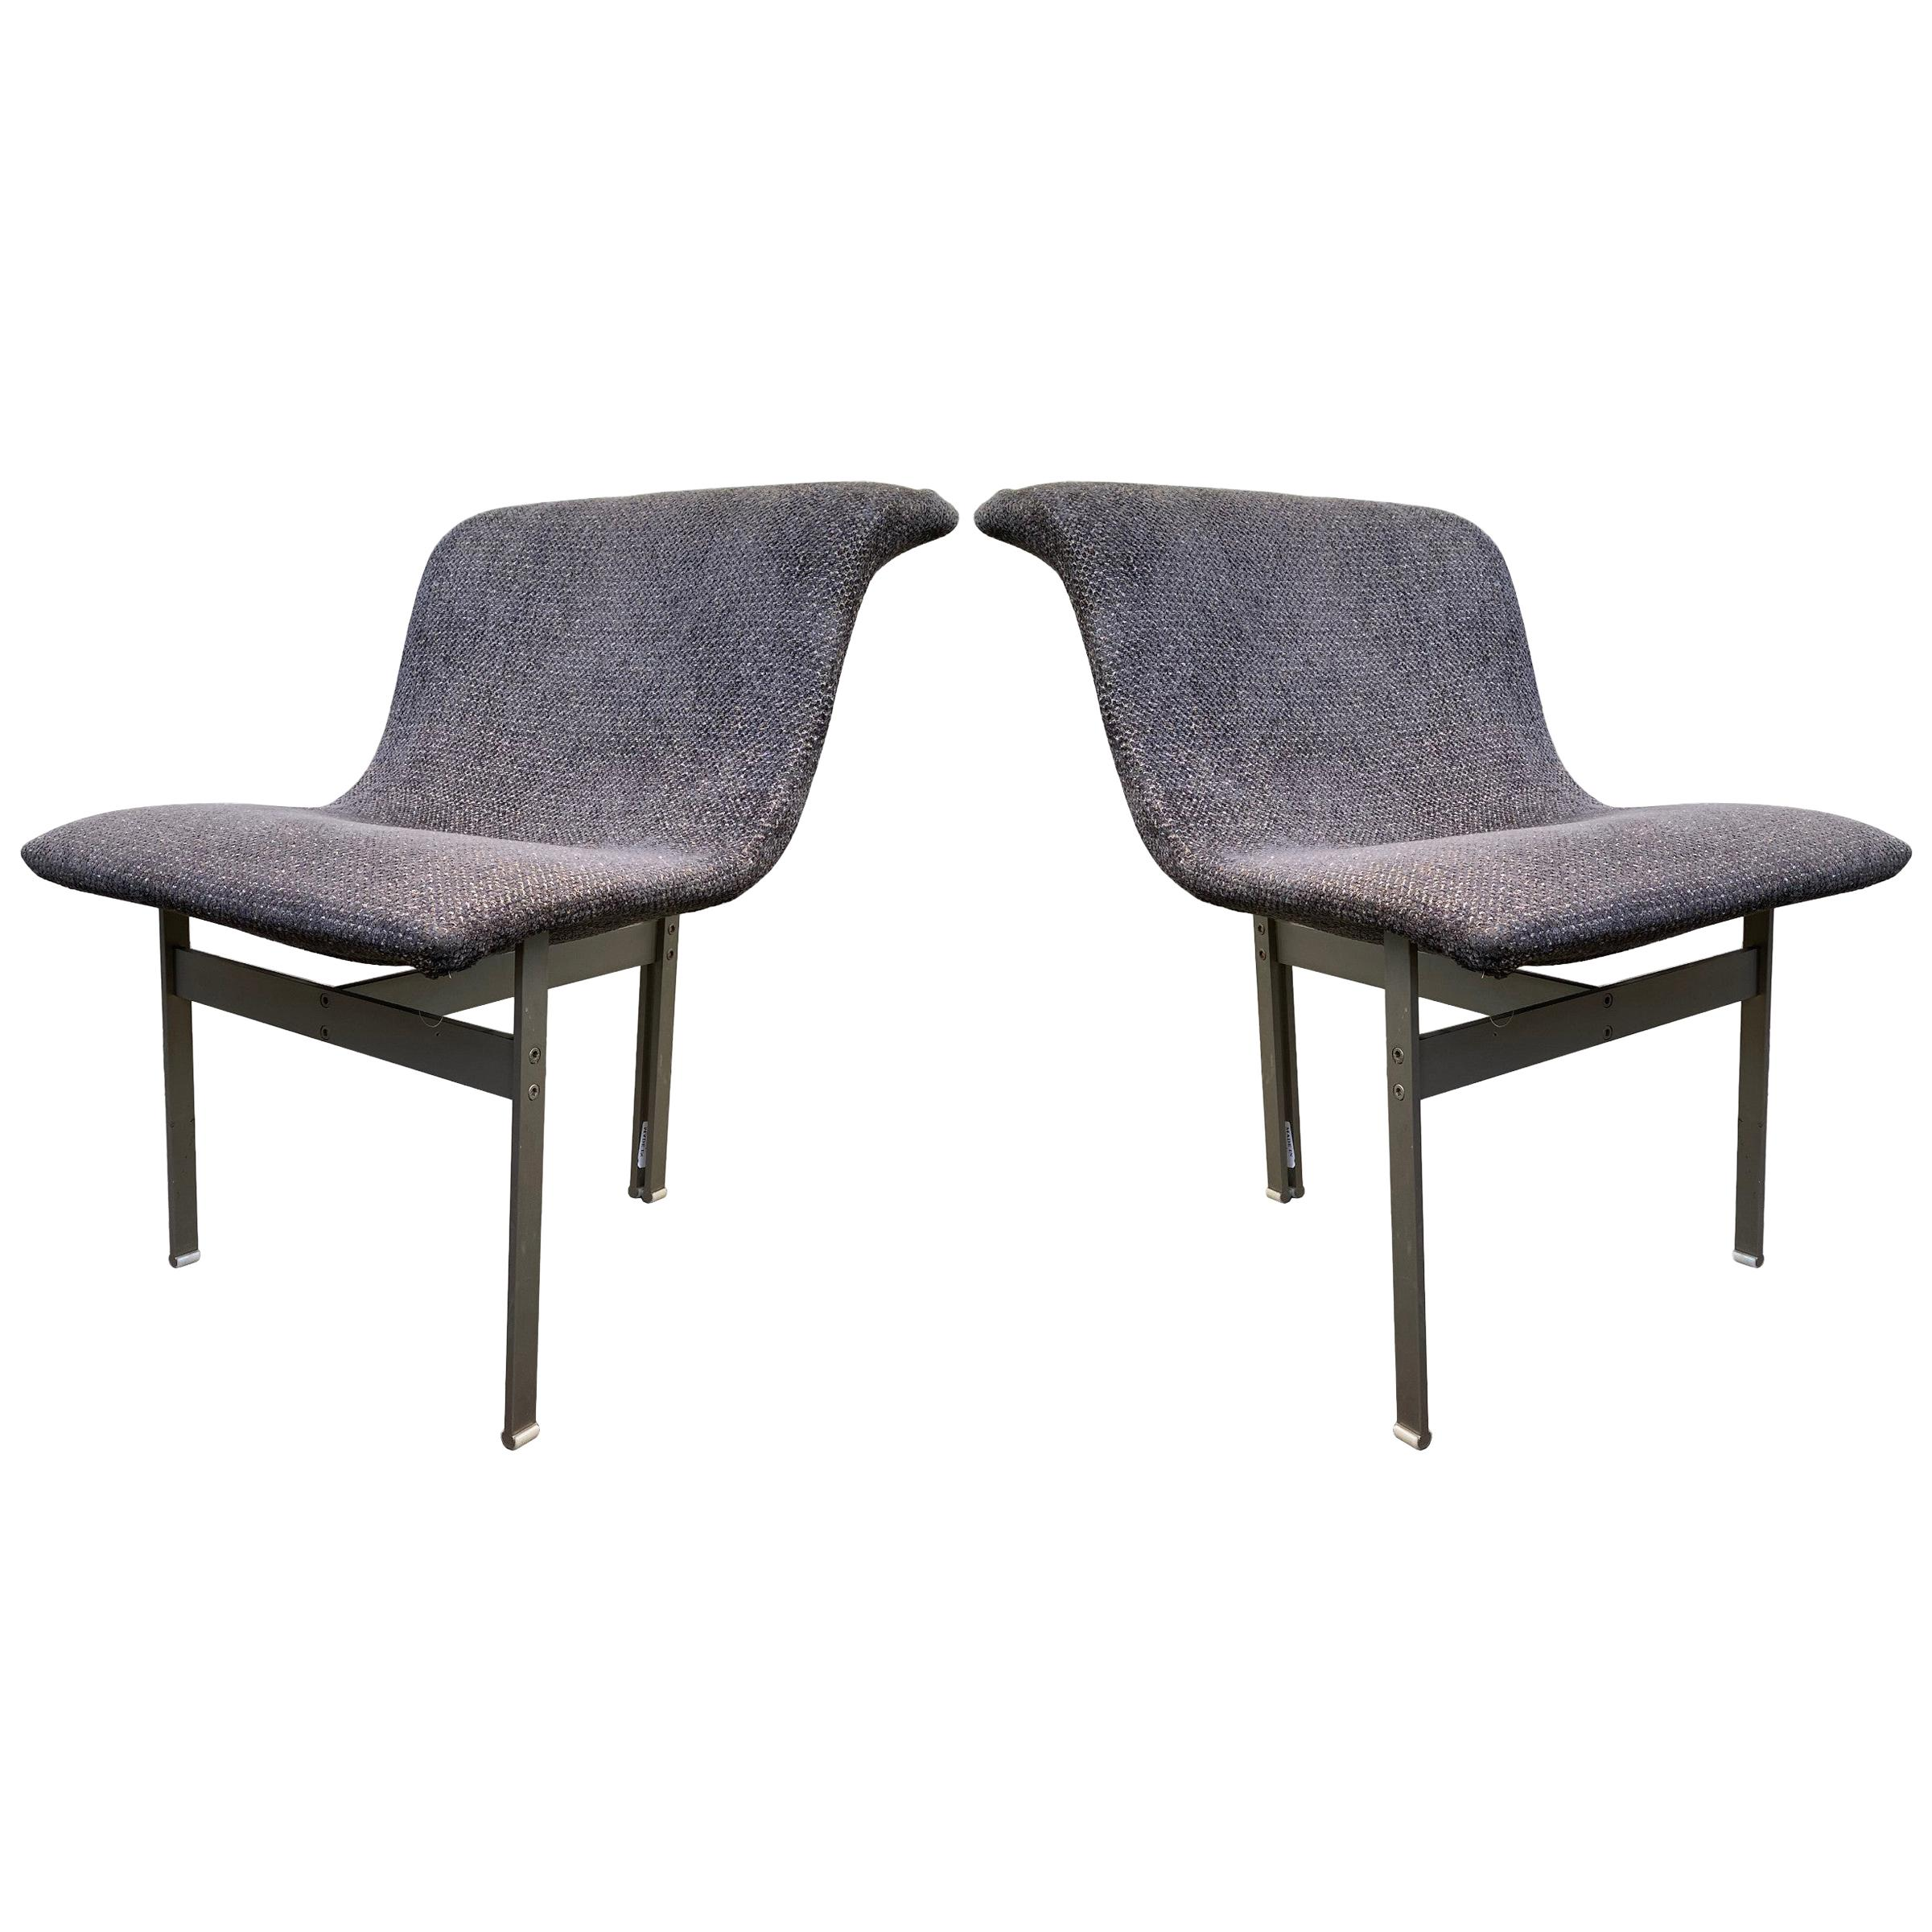 """Rare Pair of """"Wave"""" Occasional Chairs by Giovanni Offredi for Saporiti Italia"""